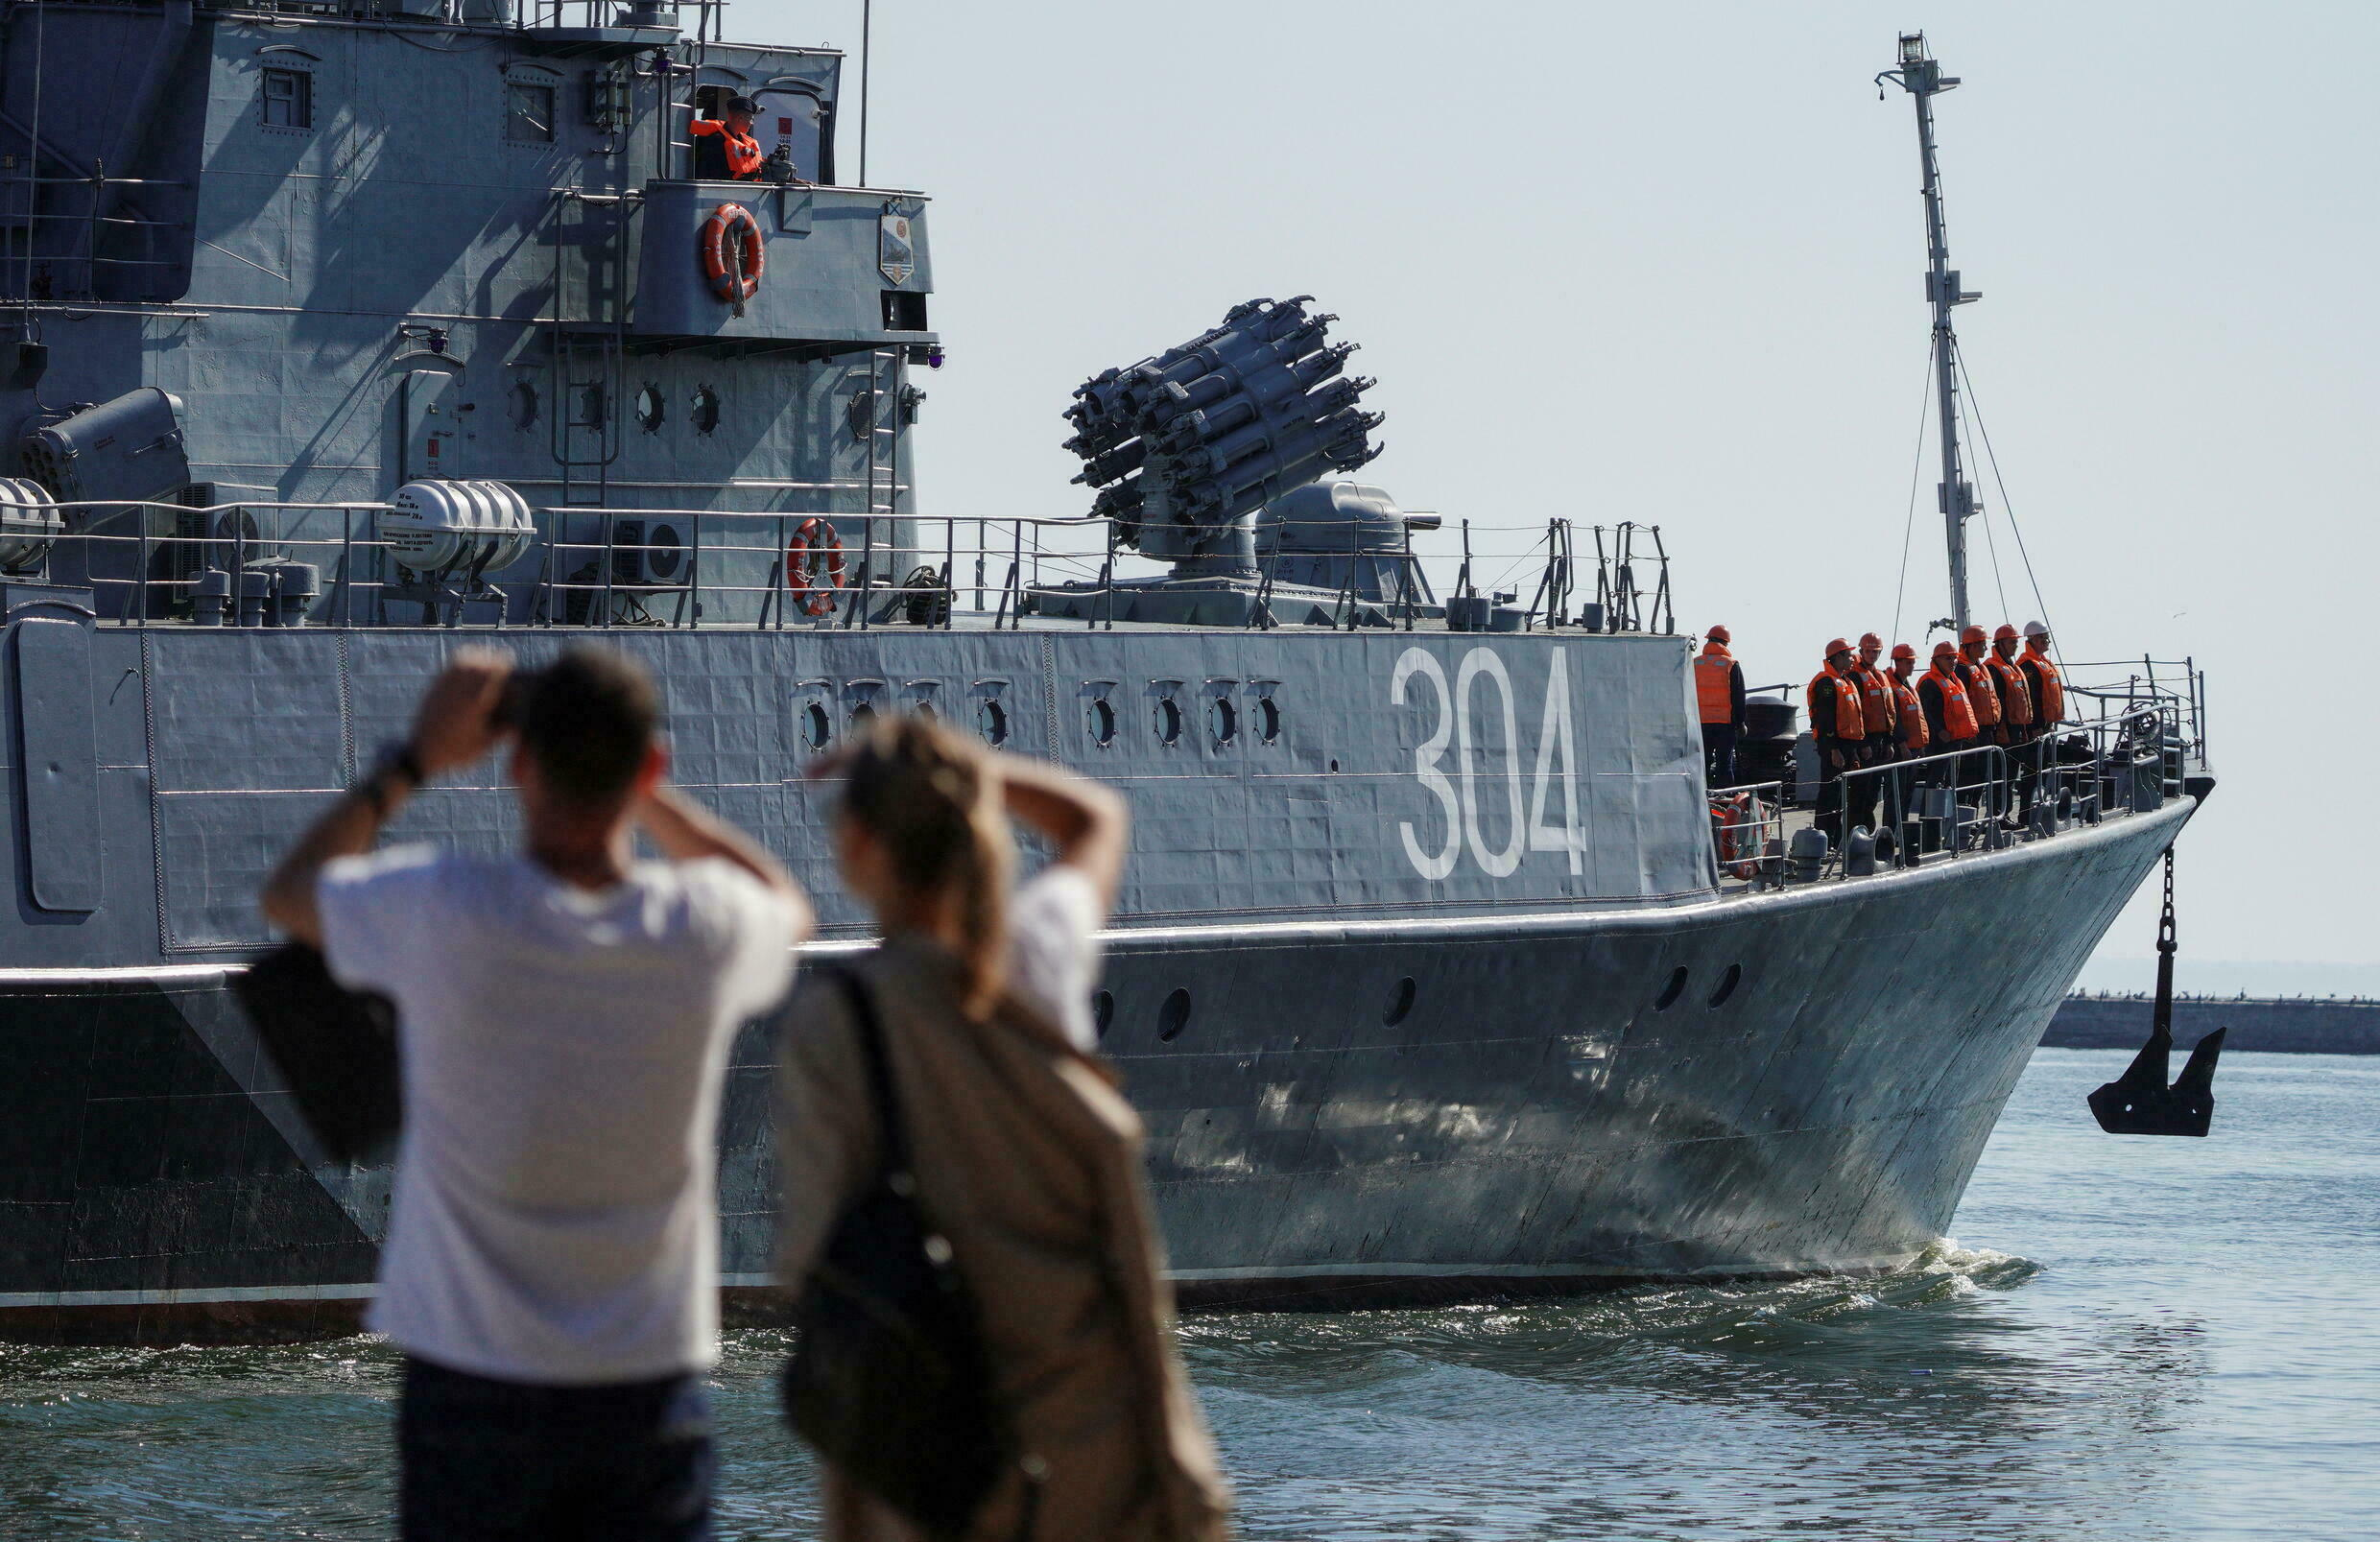 People watch small anti-submarine ship Urengoy leaving a port during naval drills, which are staged by the Baltic Fleet forces of the Russian Navy, in the Baltic Sea town of Baltiysk in Kaliningrad Region, Russia on September 9, 2021.